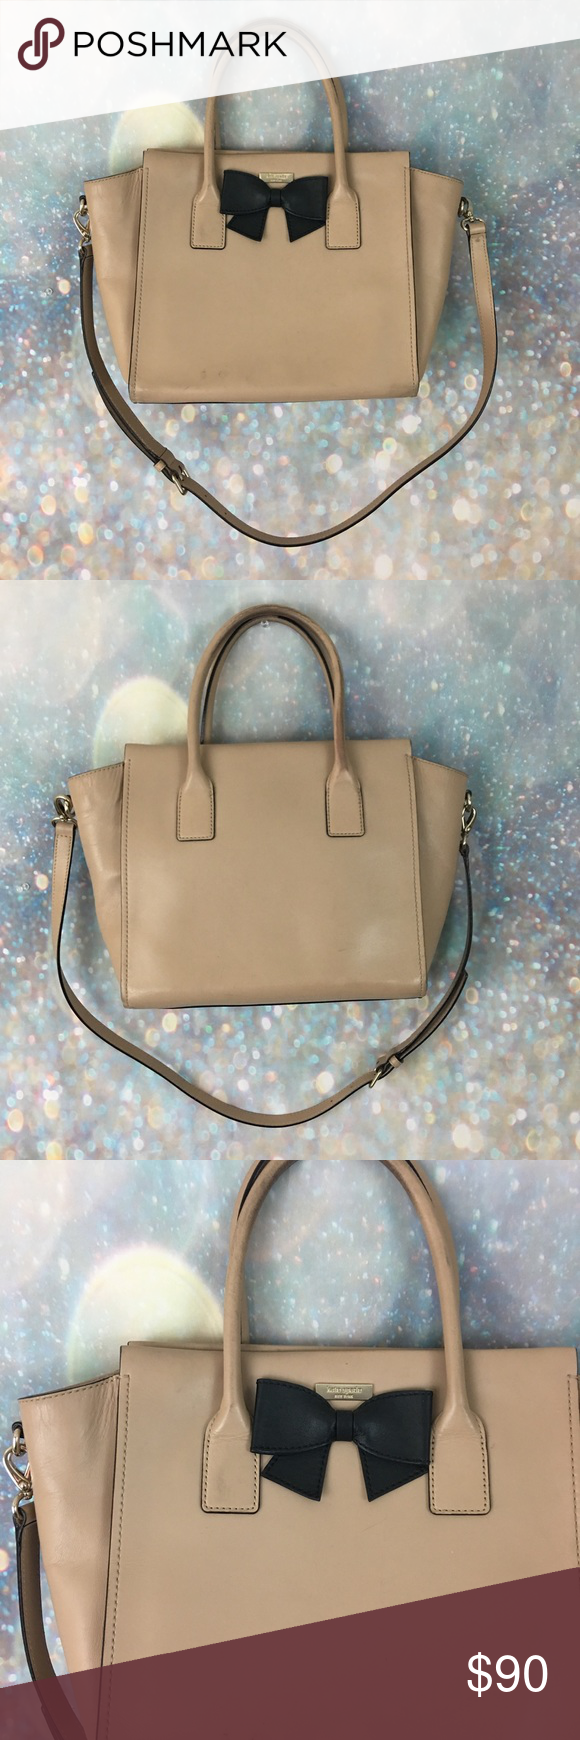 """Kate Spade tan black bow crossbody tote purse Good pre owned condition. Handles are dirty, has a couple marks on outside. About 17"""" x 12"""" kate spade Bags"""